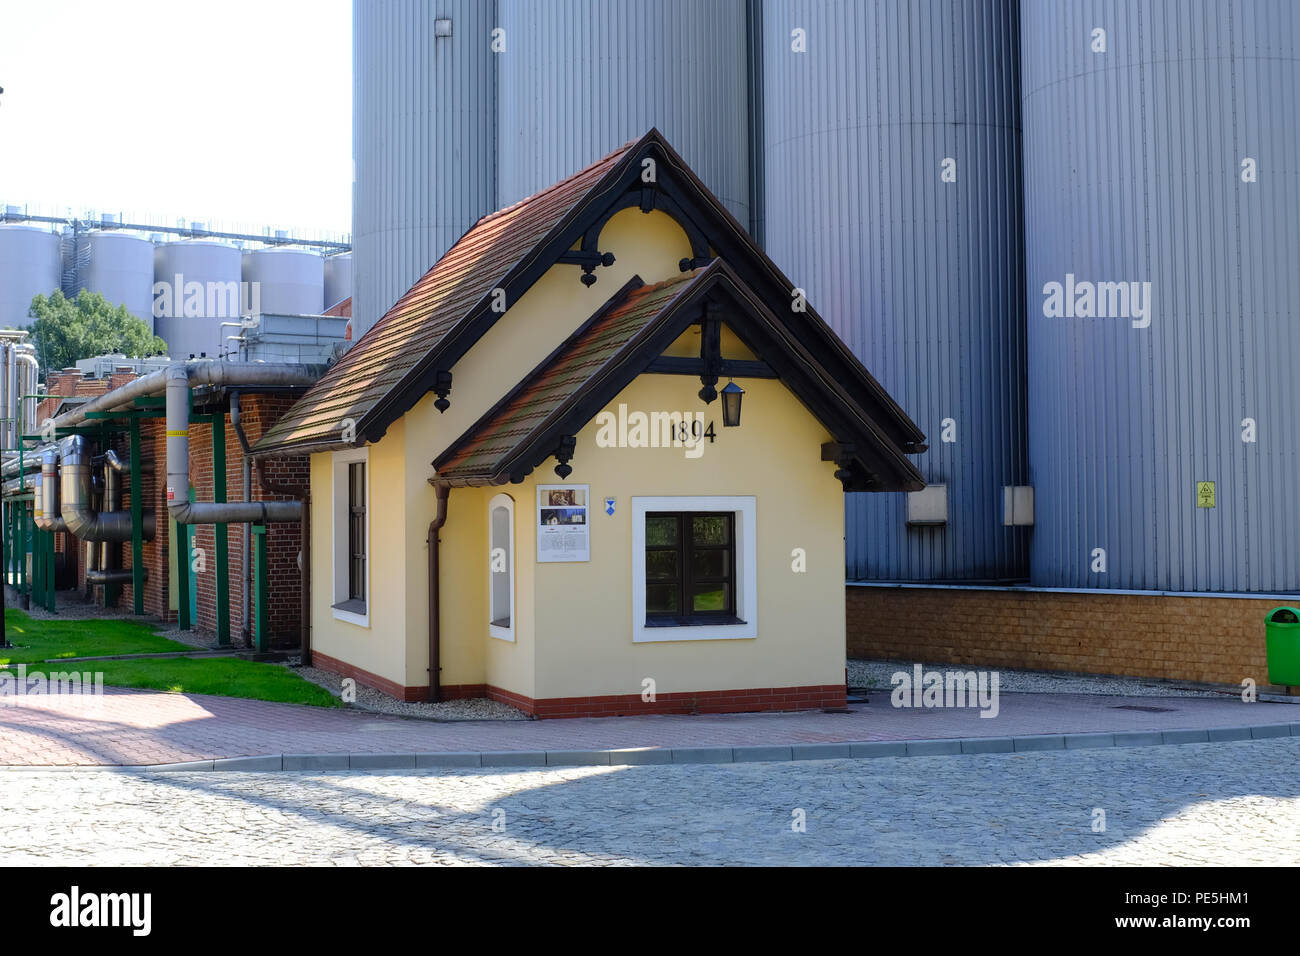 Small house at the Tychy Brewery in Poland, Europe. - Stock Image